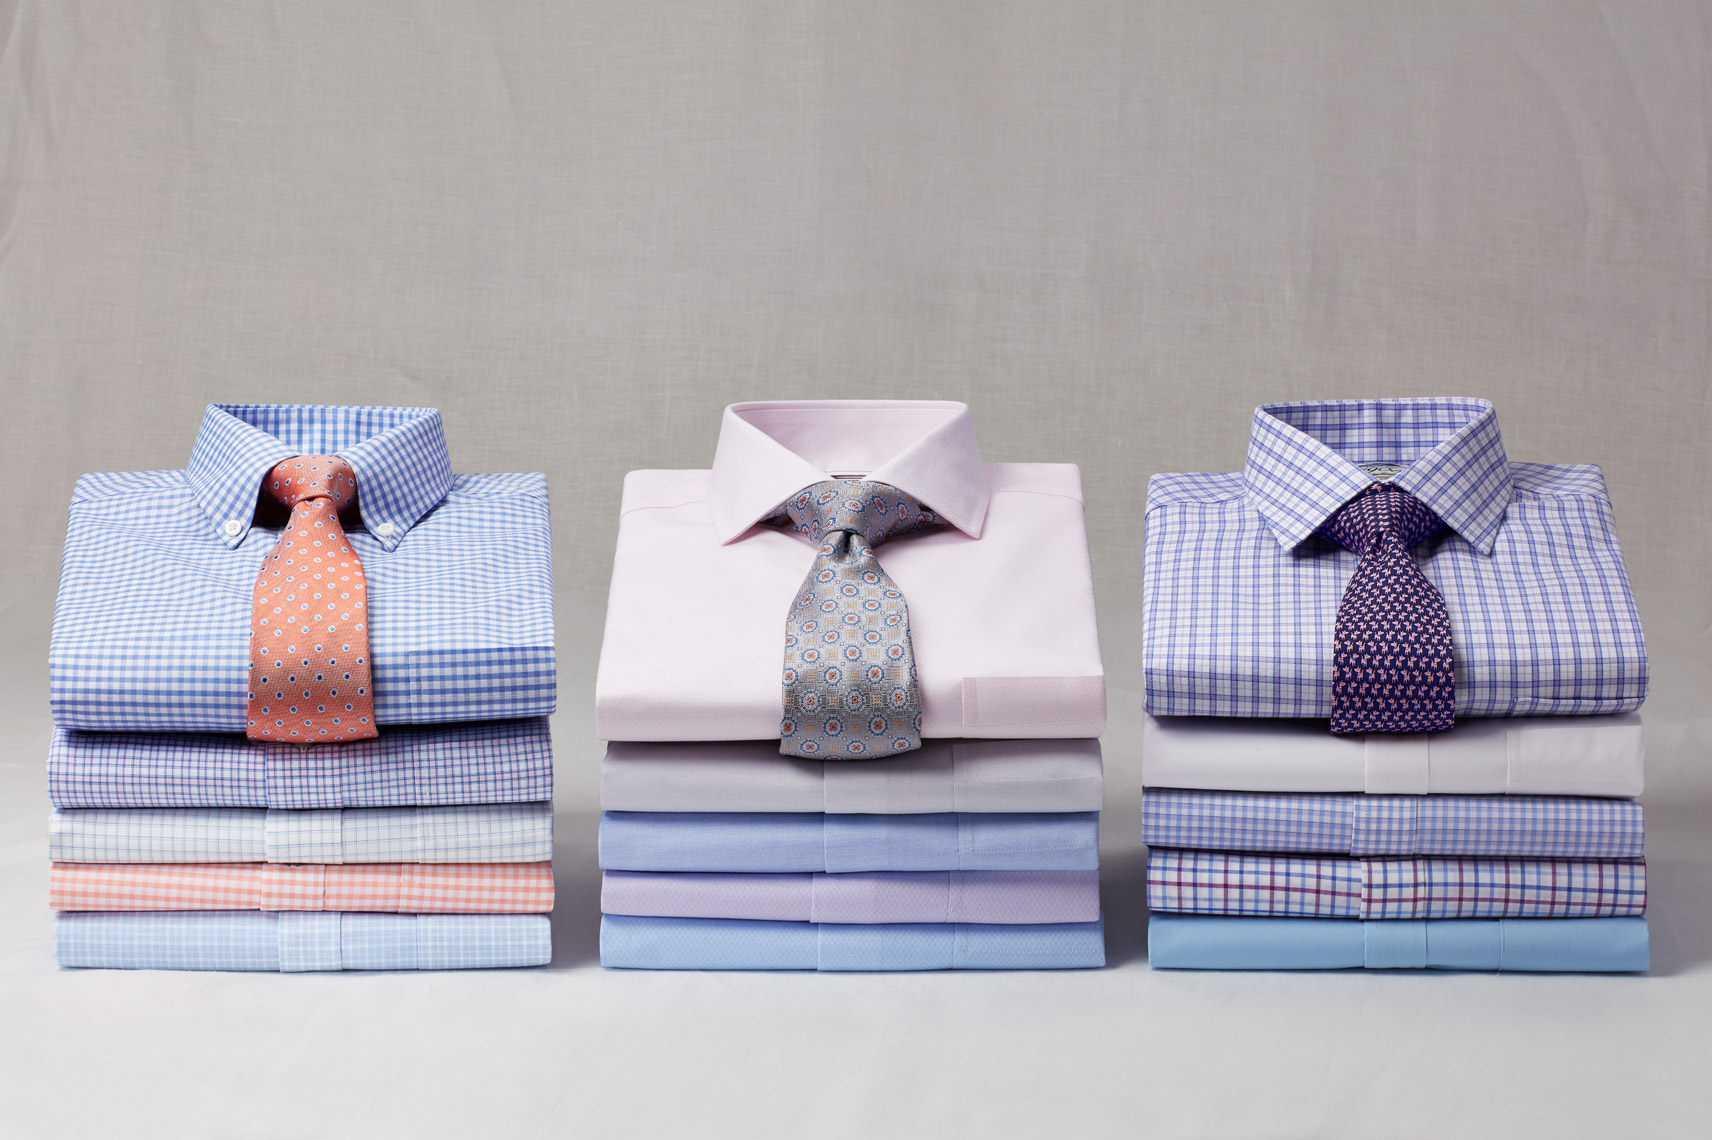 Dress Shirt Stack